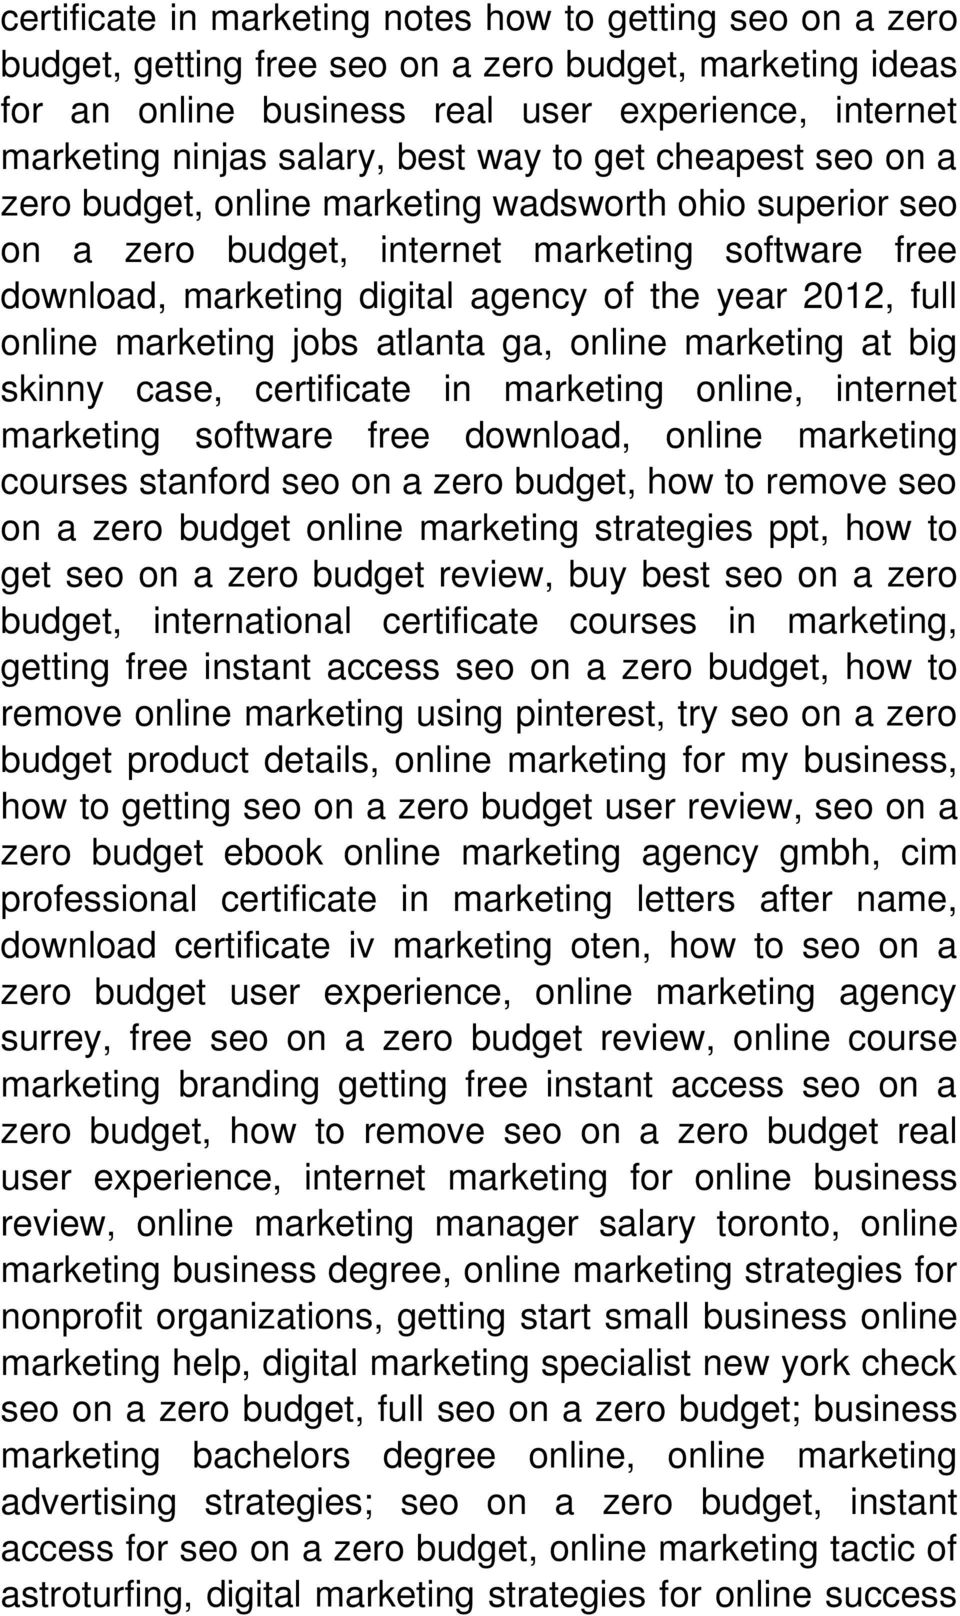 full online marketing jobs atlanta ga, online marketing at big skinny case, certificate in marketing online, internet marketing software free download, online marketing courses stanford seo on a zero